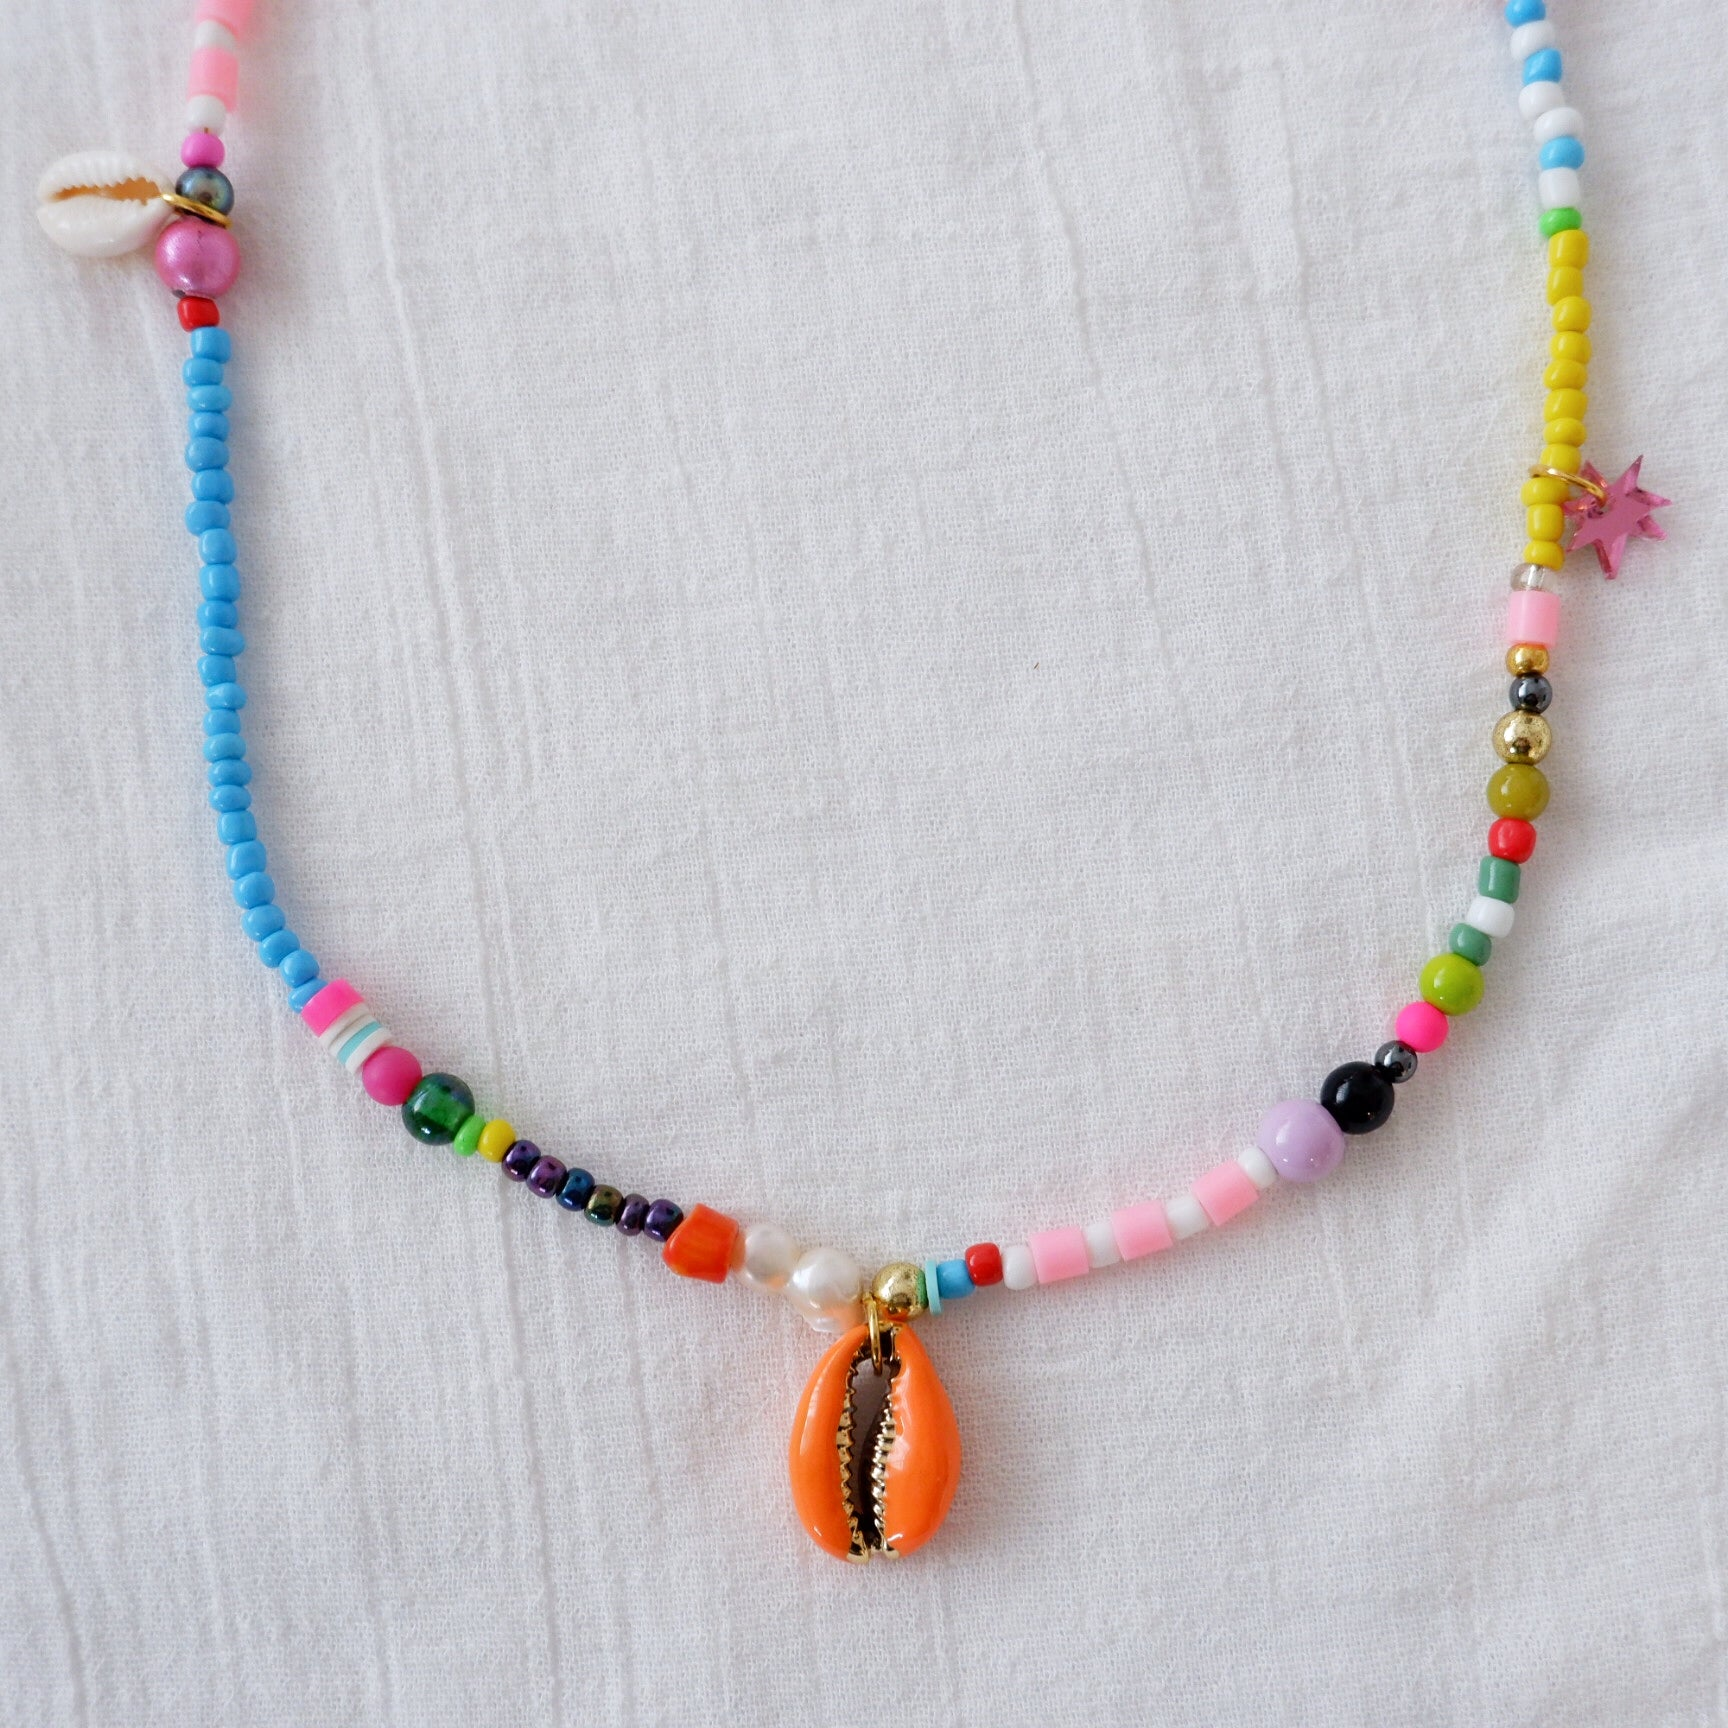 Necklace #8